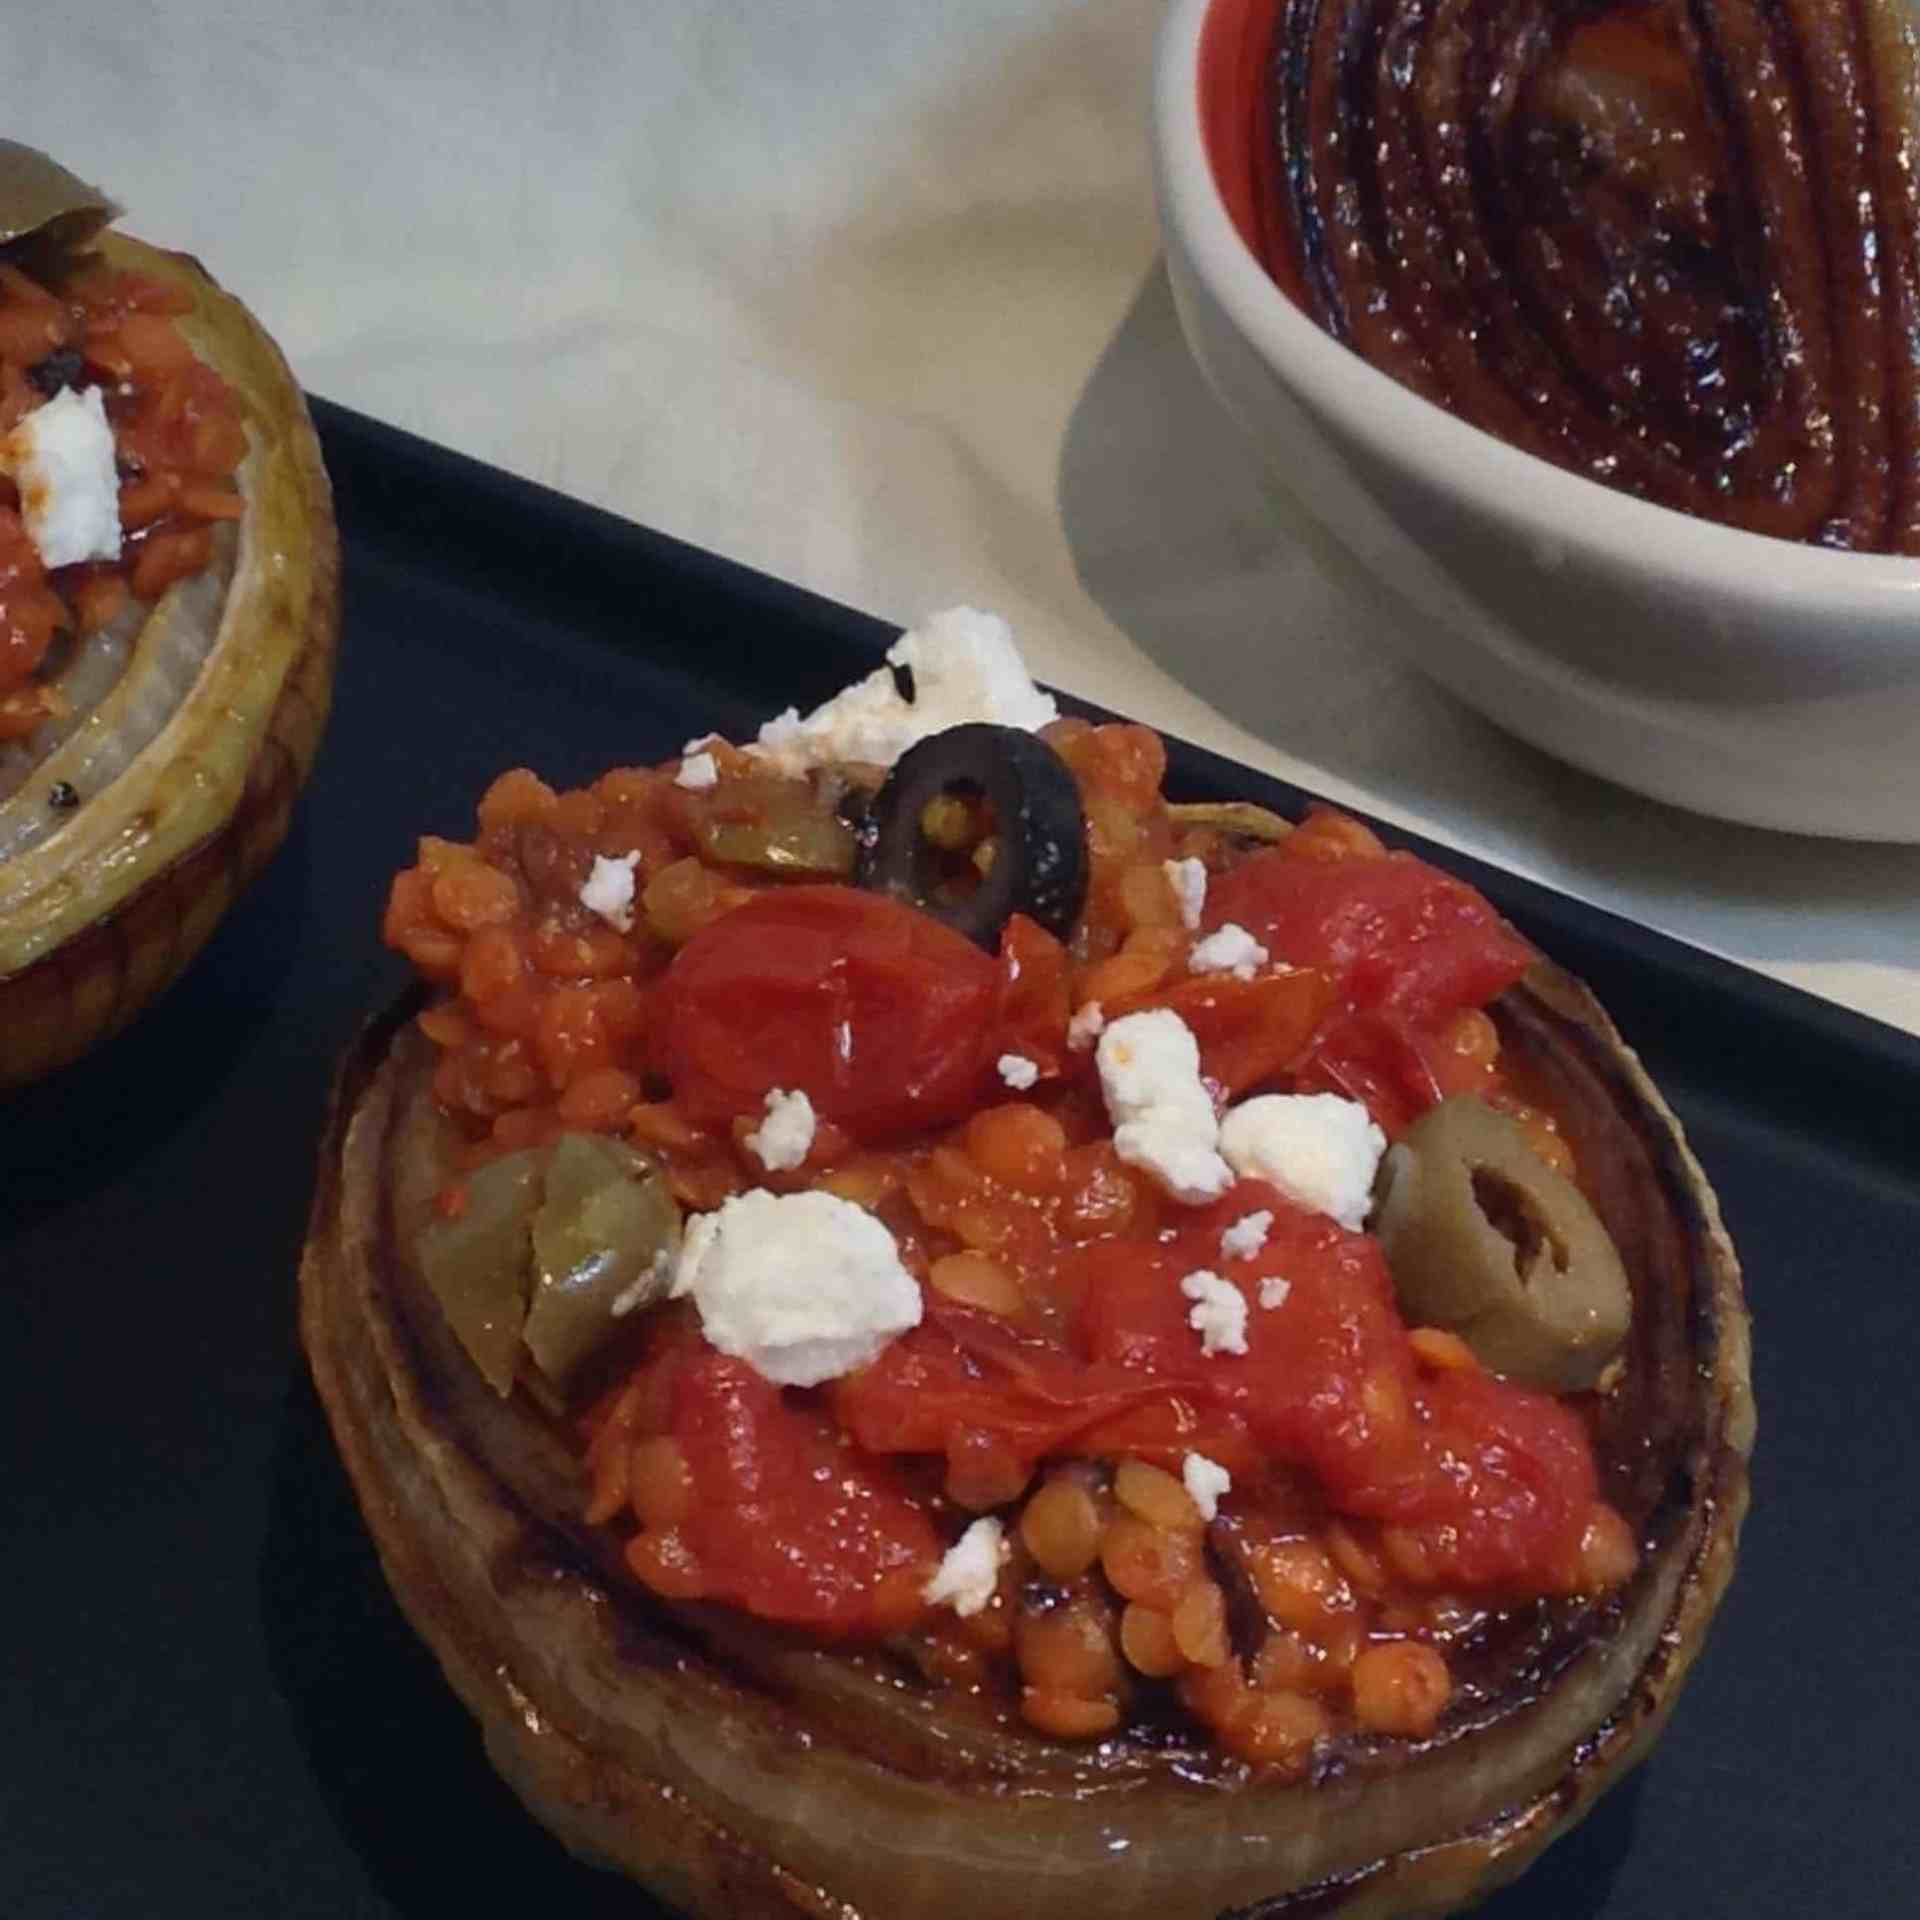 Garlicky Lentils, Olives, Roasted Tomatoes, and Feta in a Caramelized Onion Bowl